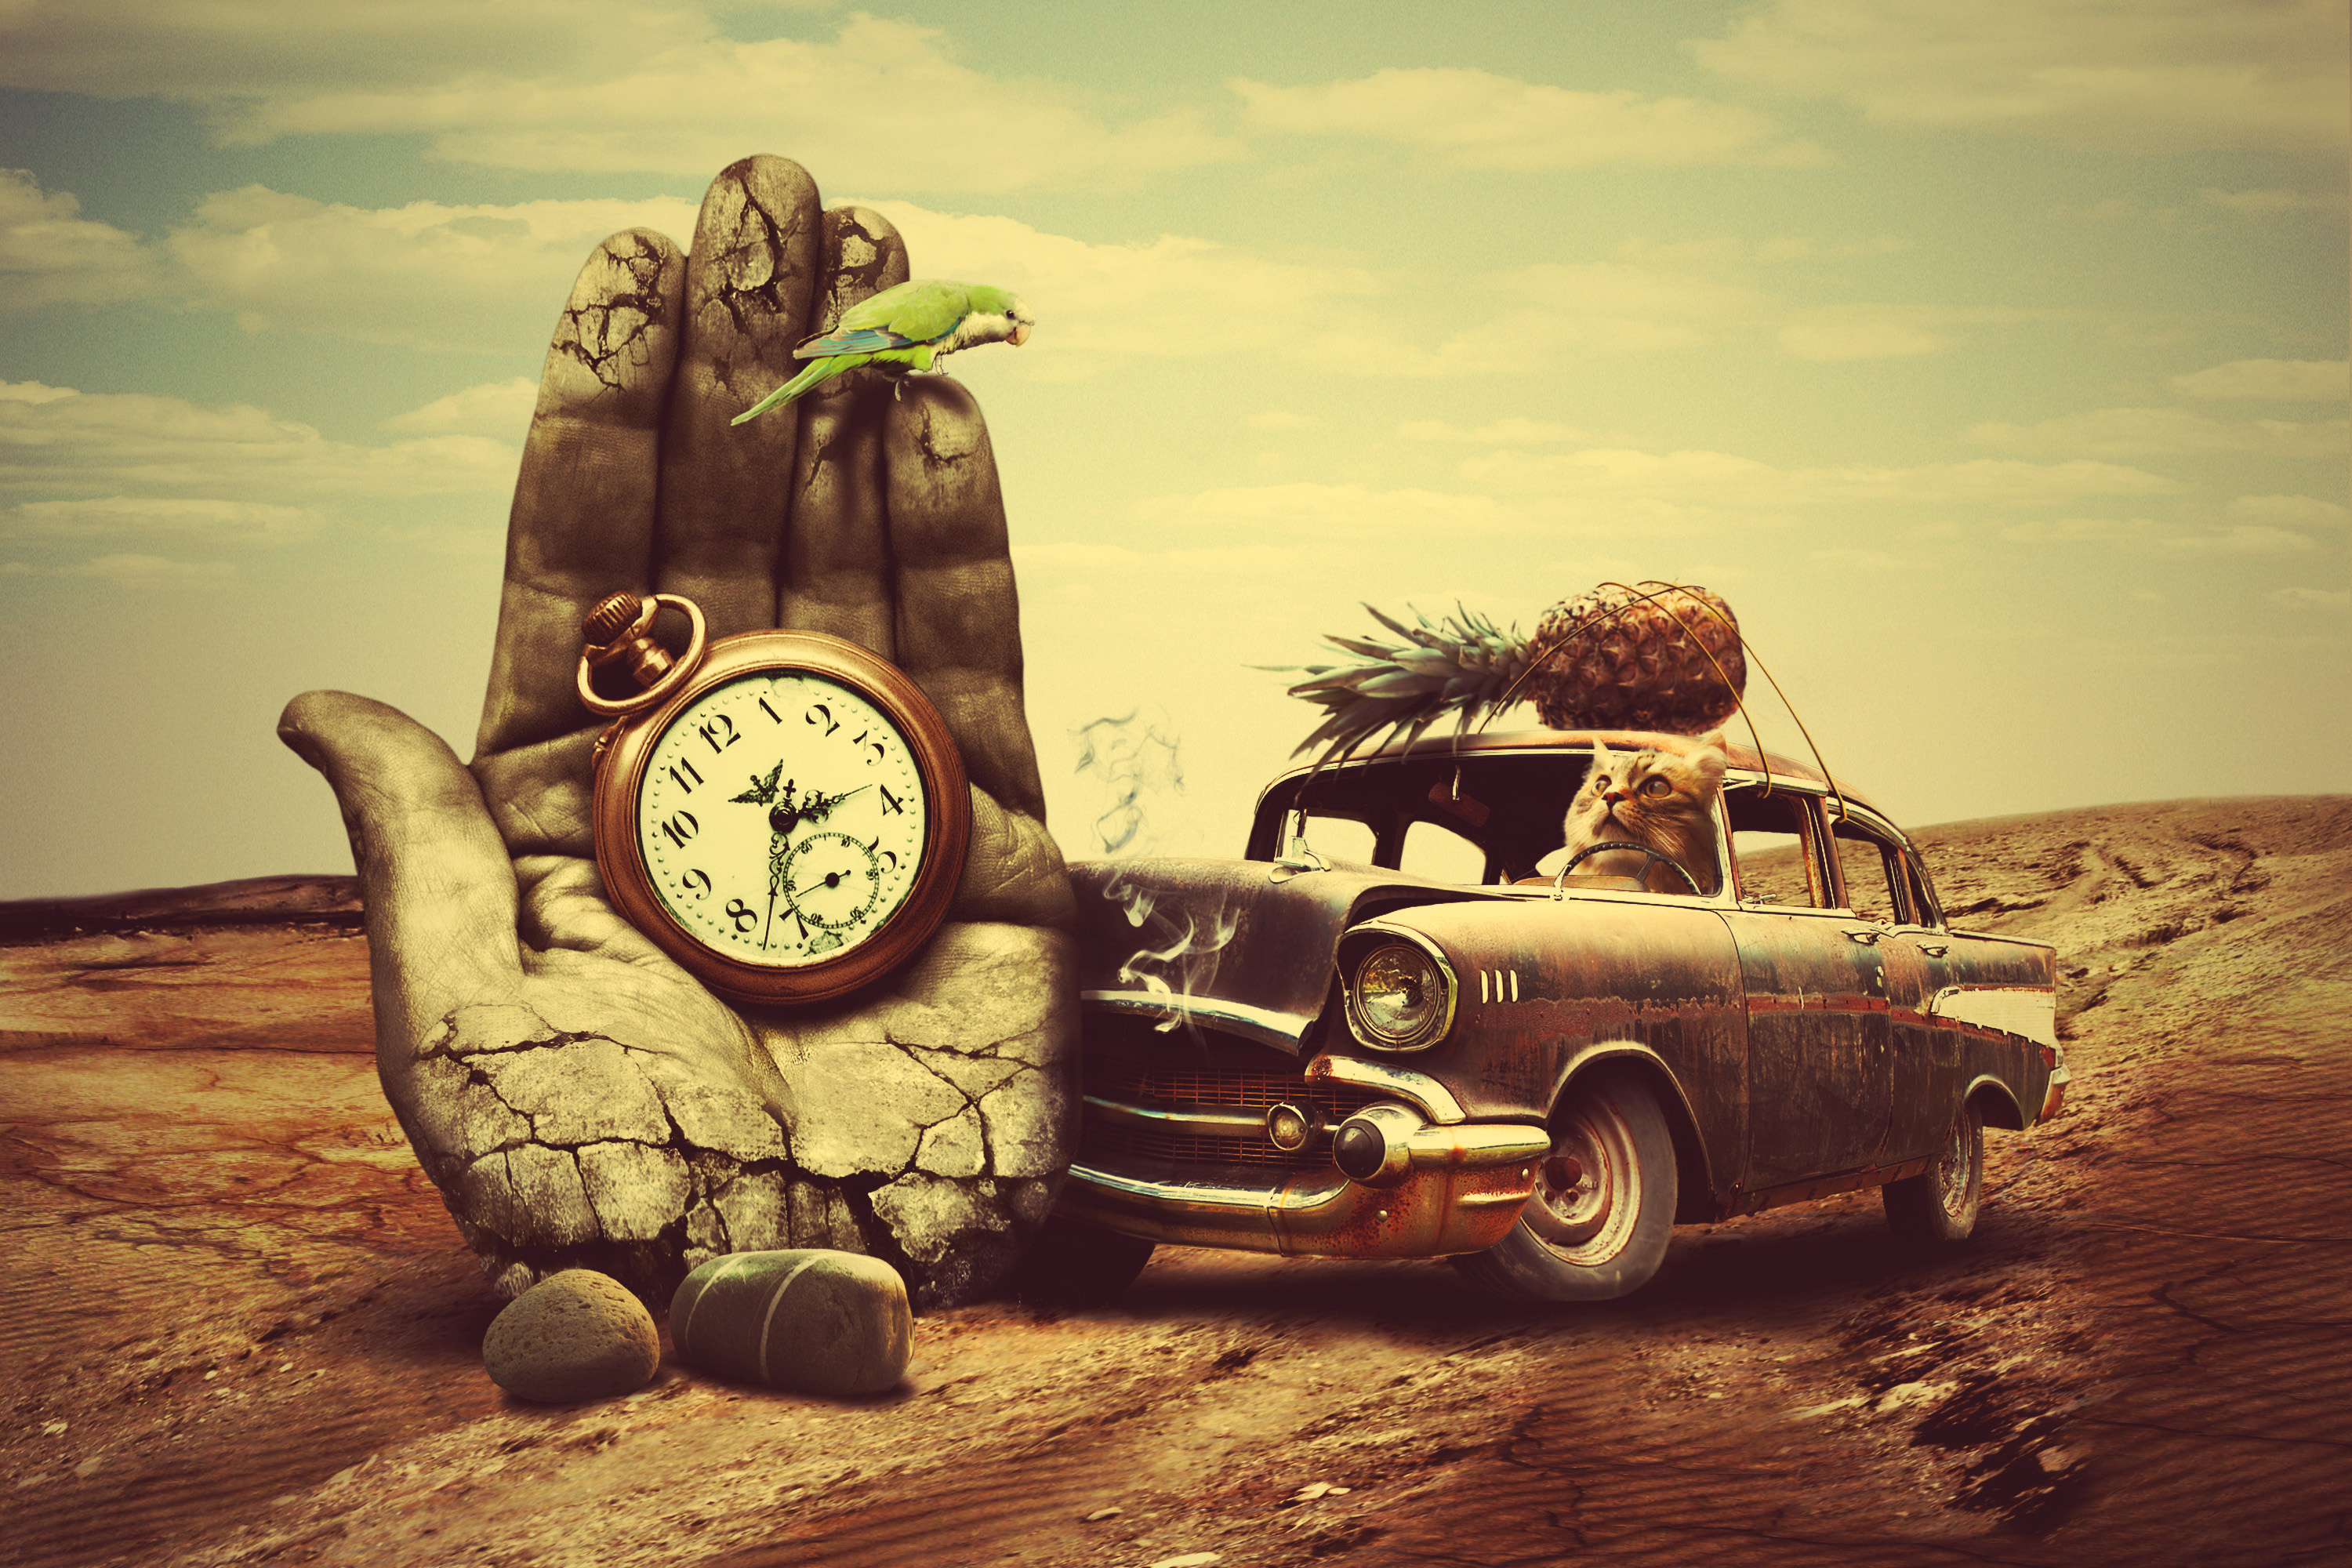 81890 download wallpaper Art, Clock, Hand, Cat, Car, Creative, Surrealism, Pineapple screensavers and pictures for free